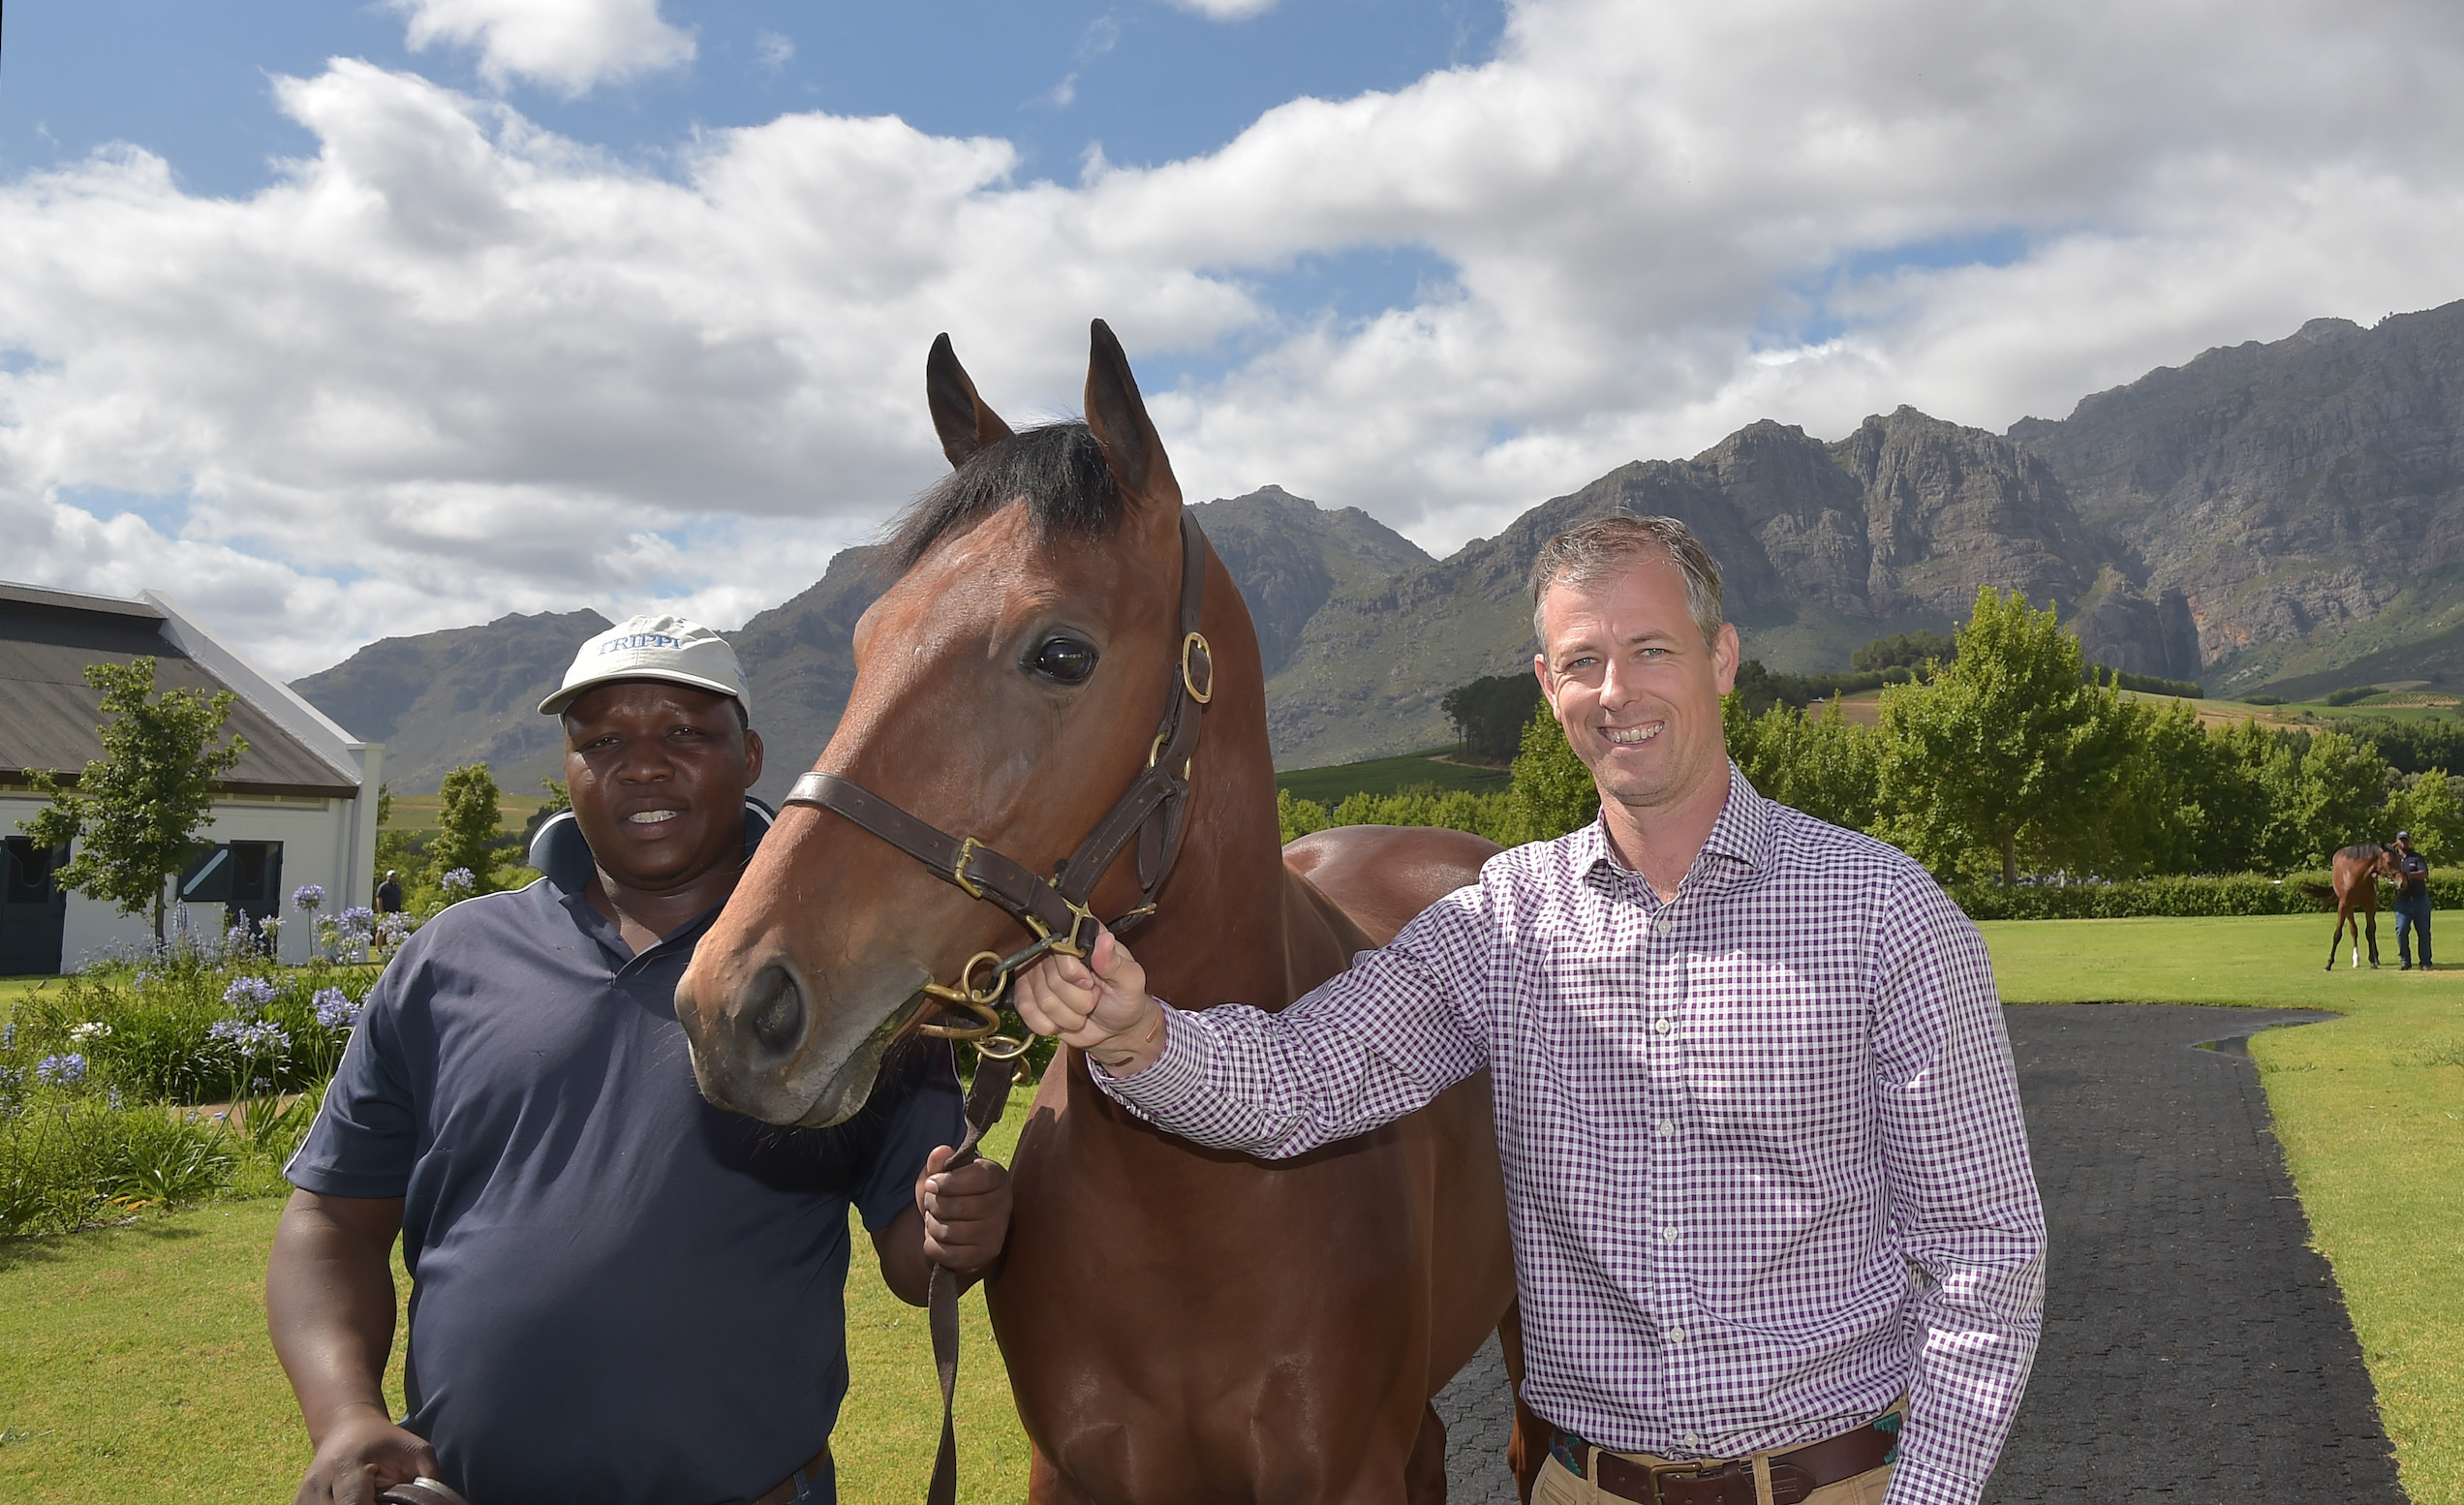 Outstanding horsemen: staff at Gaynor Rupert's beautiful Drakenstein Stud in the Western Cape. Photo: Hugh Routledge